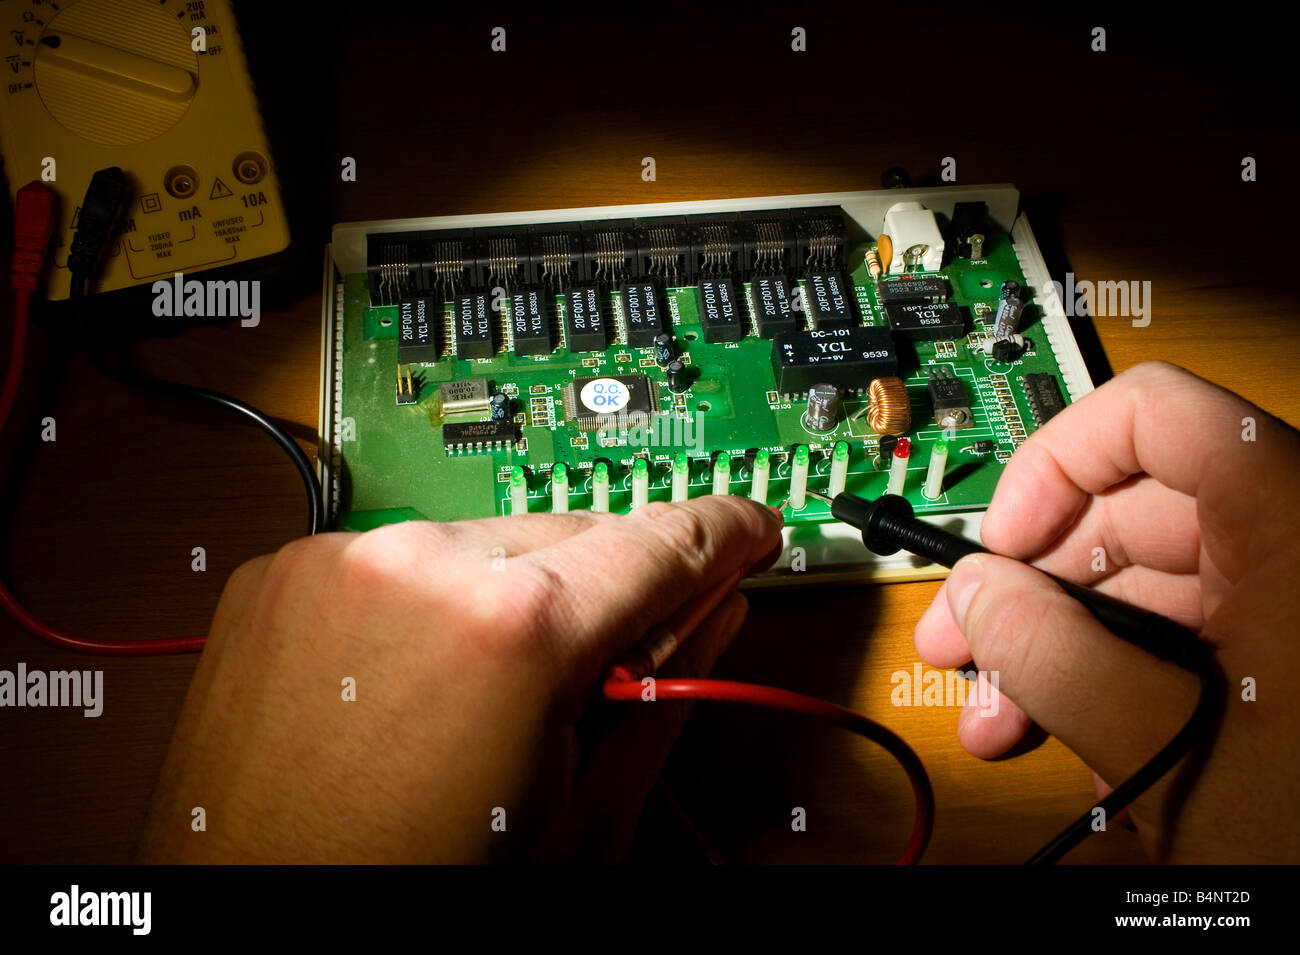 A Circuit Board Is Being Tested With Multimeter And Only The Hands Electronics Test For Series Including Voltmeter Of Tester Are Shown